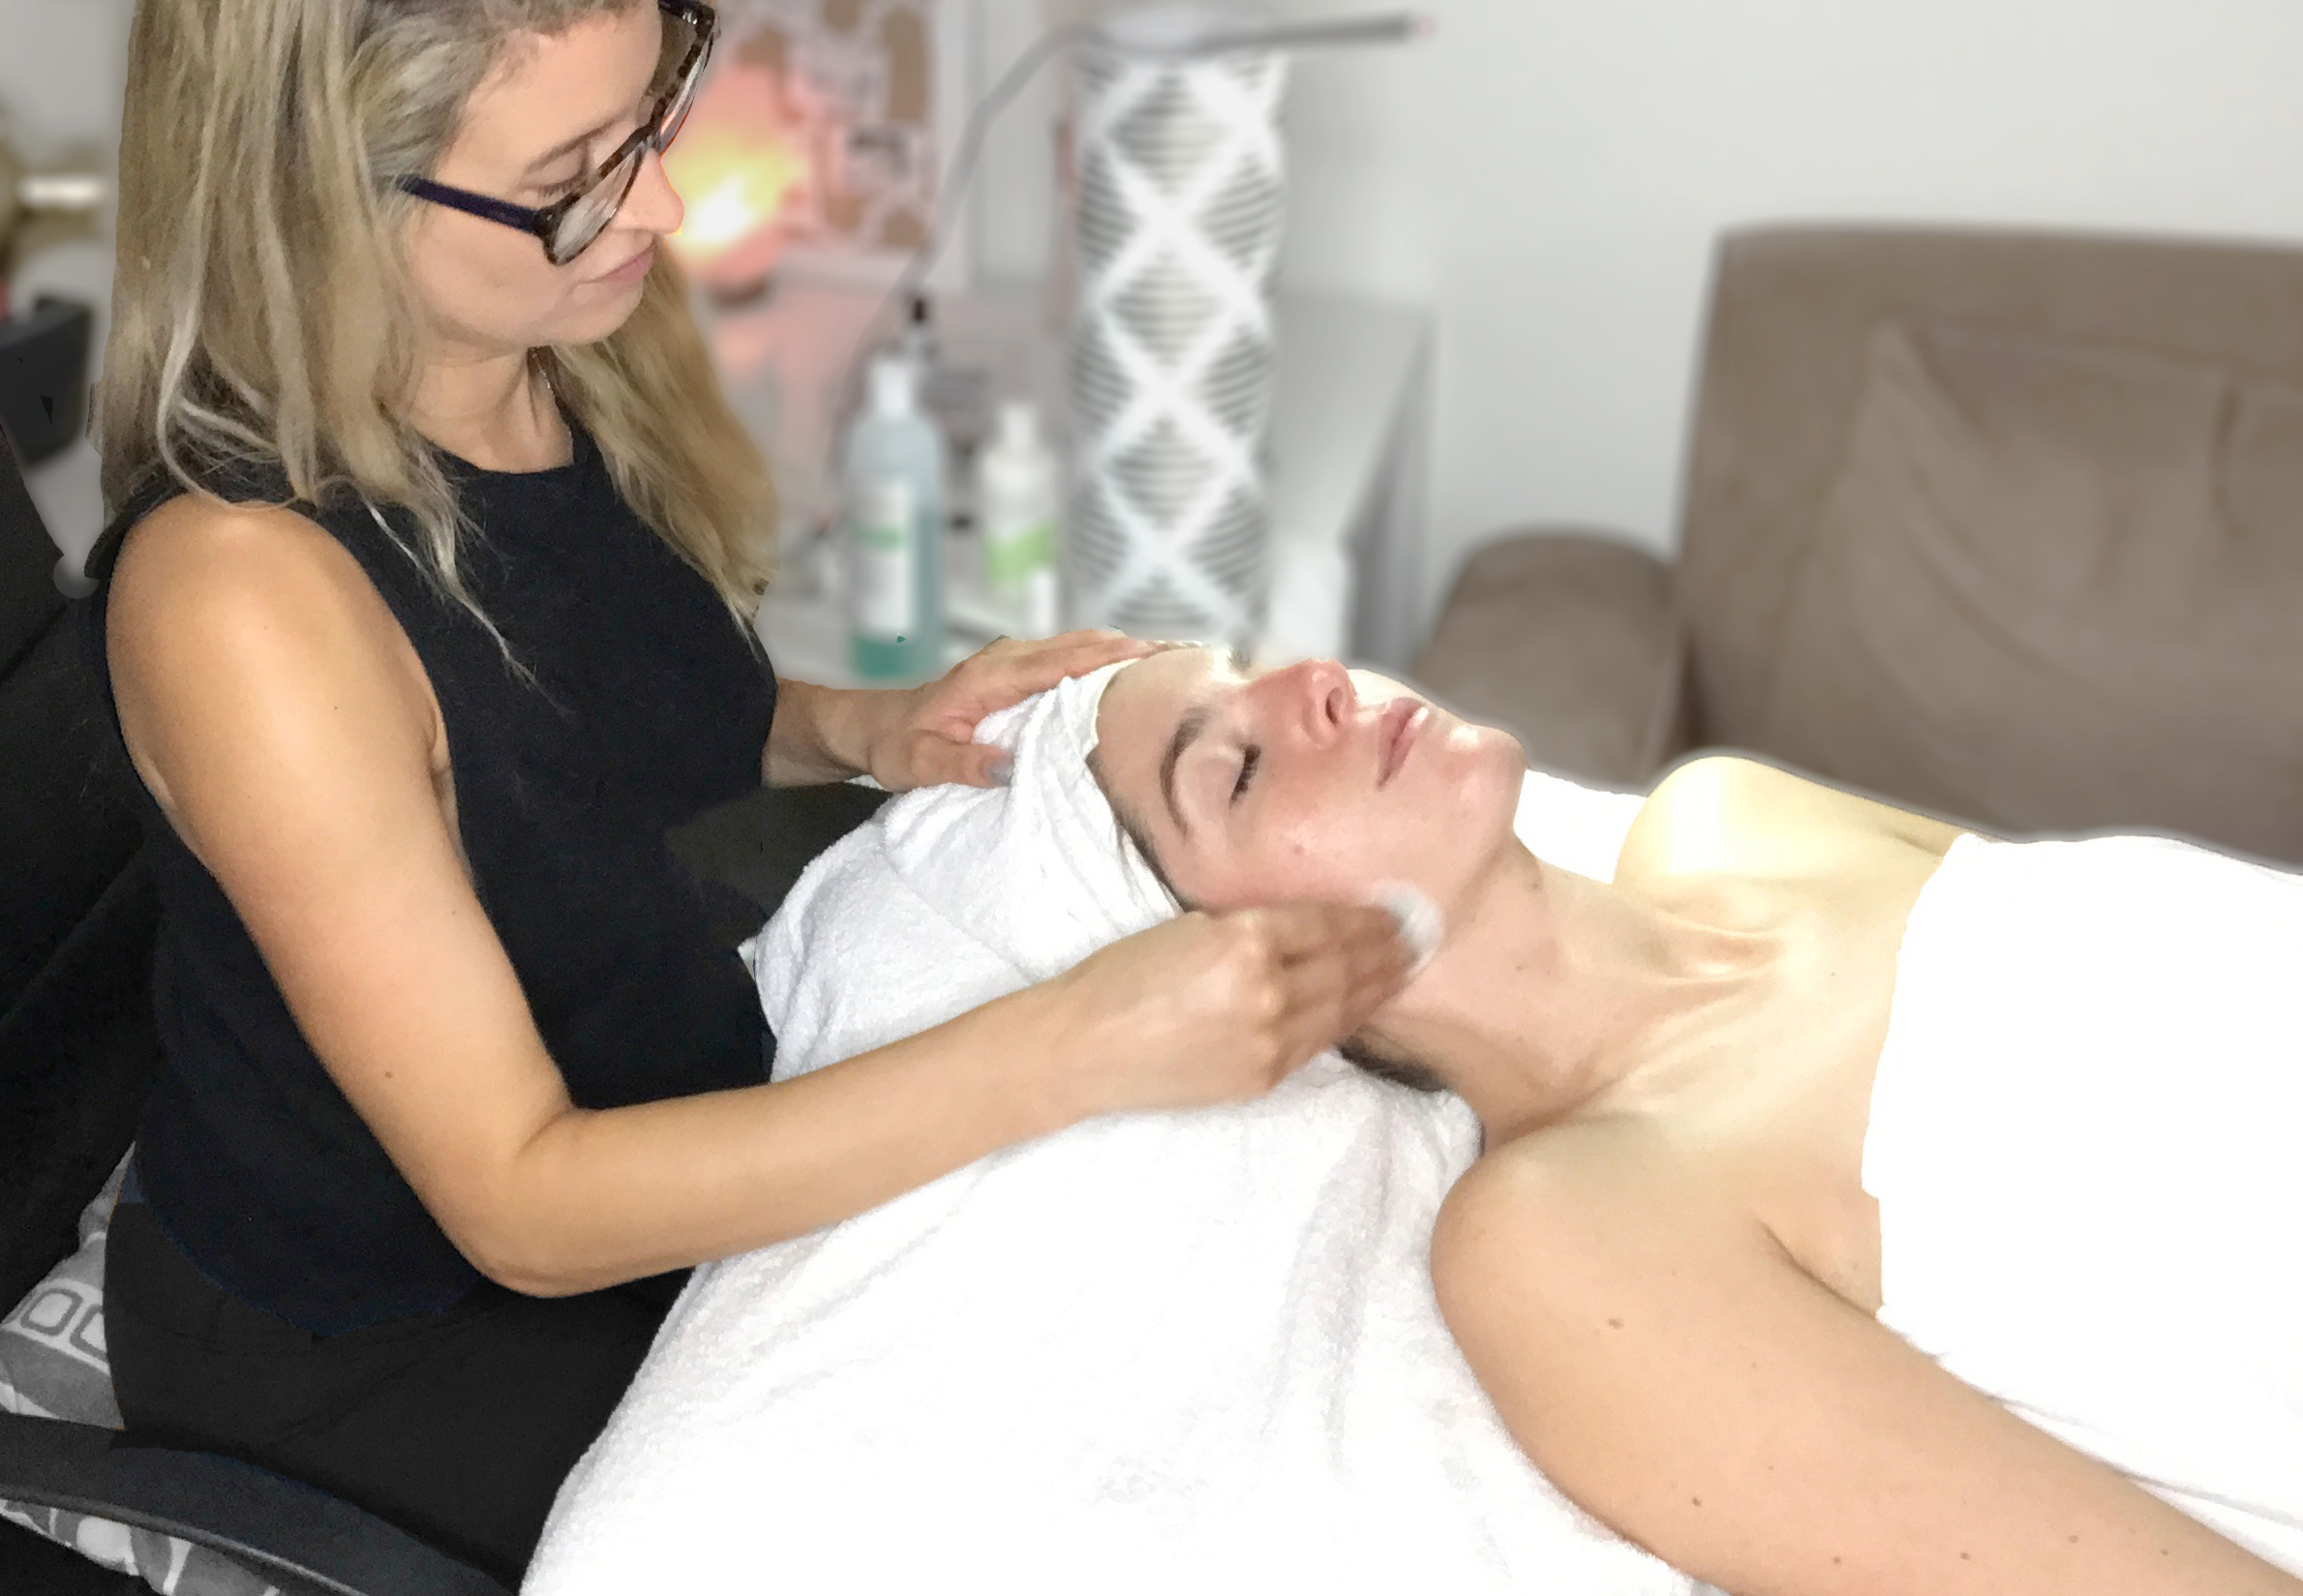 Additional Services  - Signature Facial- A beneficial facial with cleansing, surface     exfoliation, an enzyme peel, steam, necessary extractions, custom mask, and facial massage. *Custom modifications for acne prone skinCustom Add-ons:Anti-Aging Facial- Electrolift toning micro current treatment to stimulate, lift, and sculpt the muscles of the face. Custom Anti-Aging Peel.Microdermabrasion- Reduce blemishes, age spots, fine lines, acne & acne scarring.Chemical Peel- Deep clean pores, control acne, renew, brighten and even skin tone. Reduce fine lines and wrinkles.